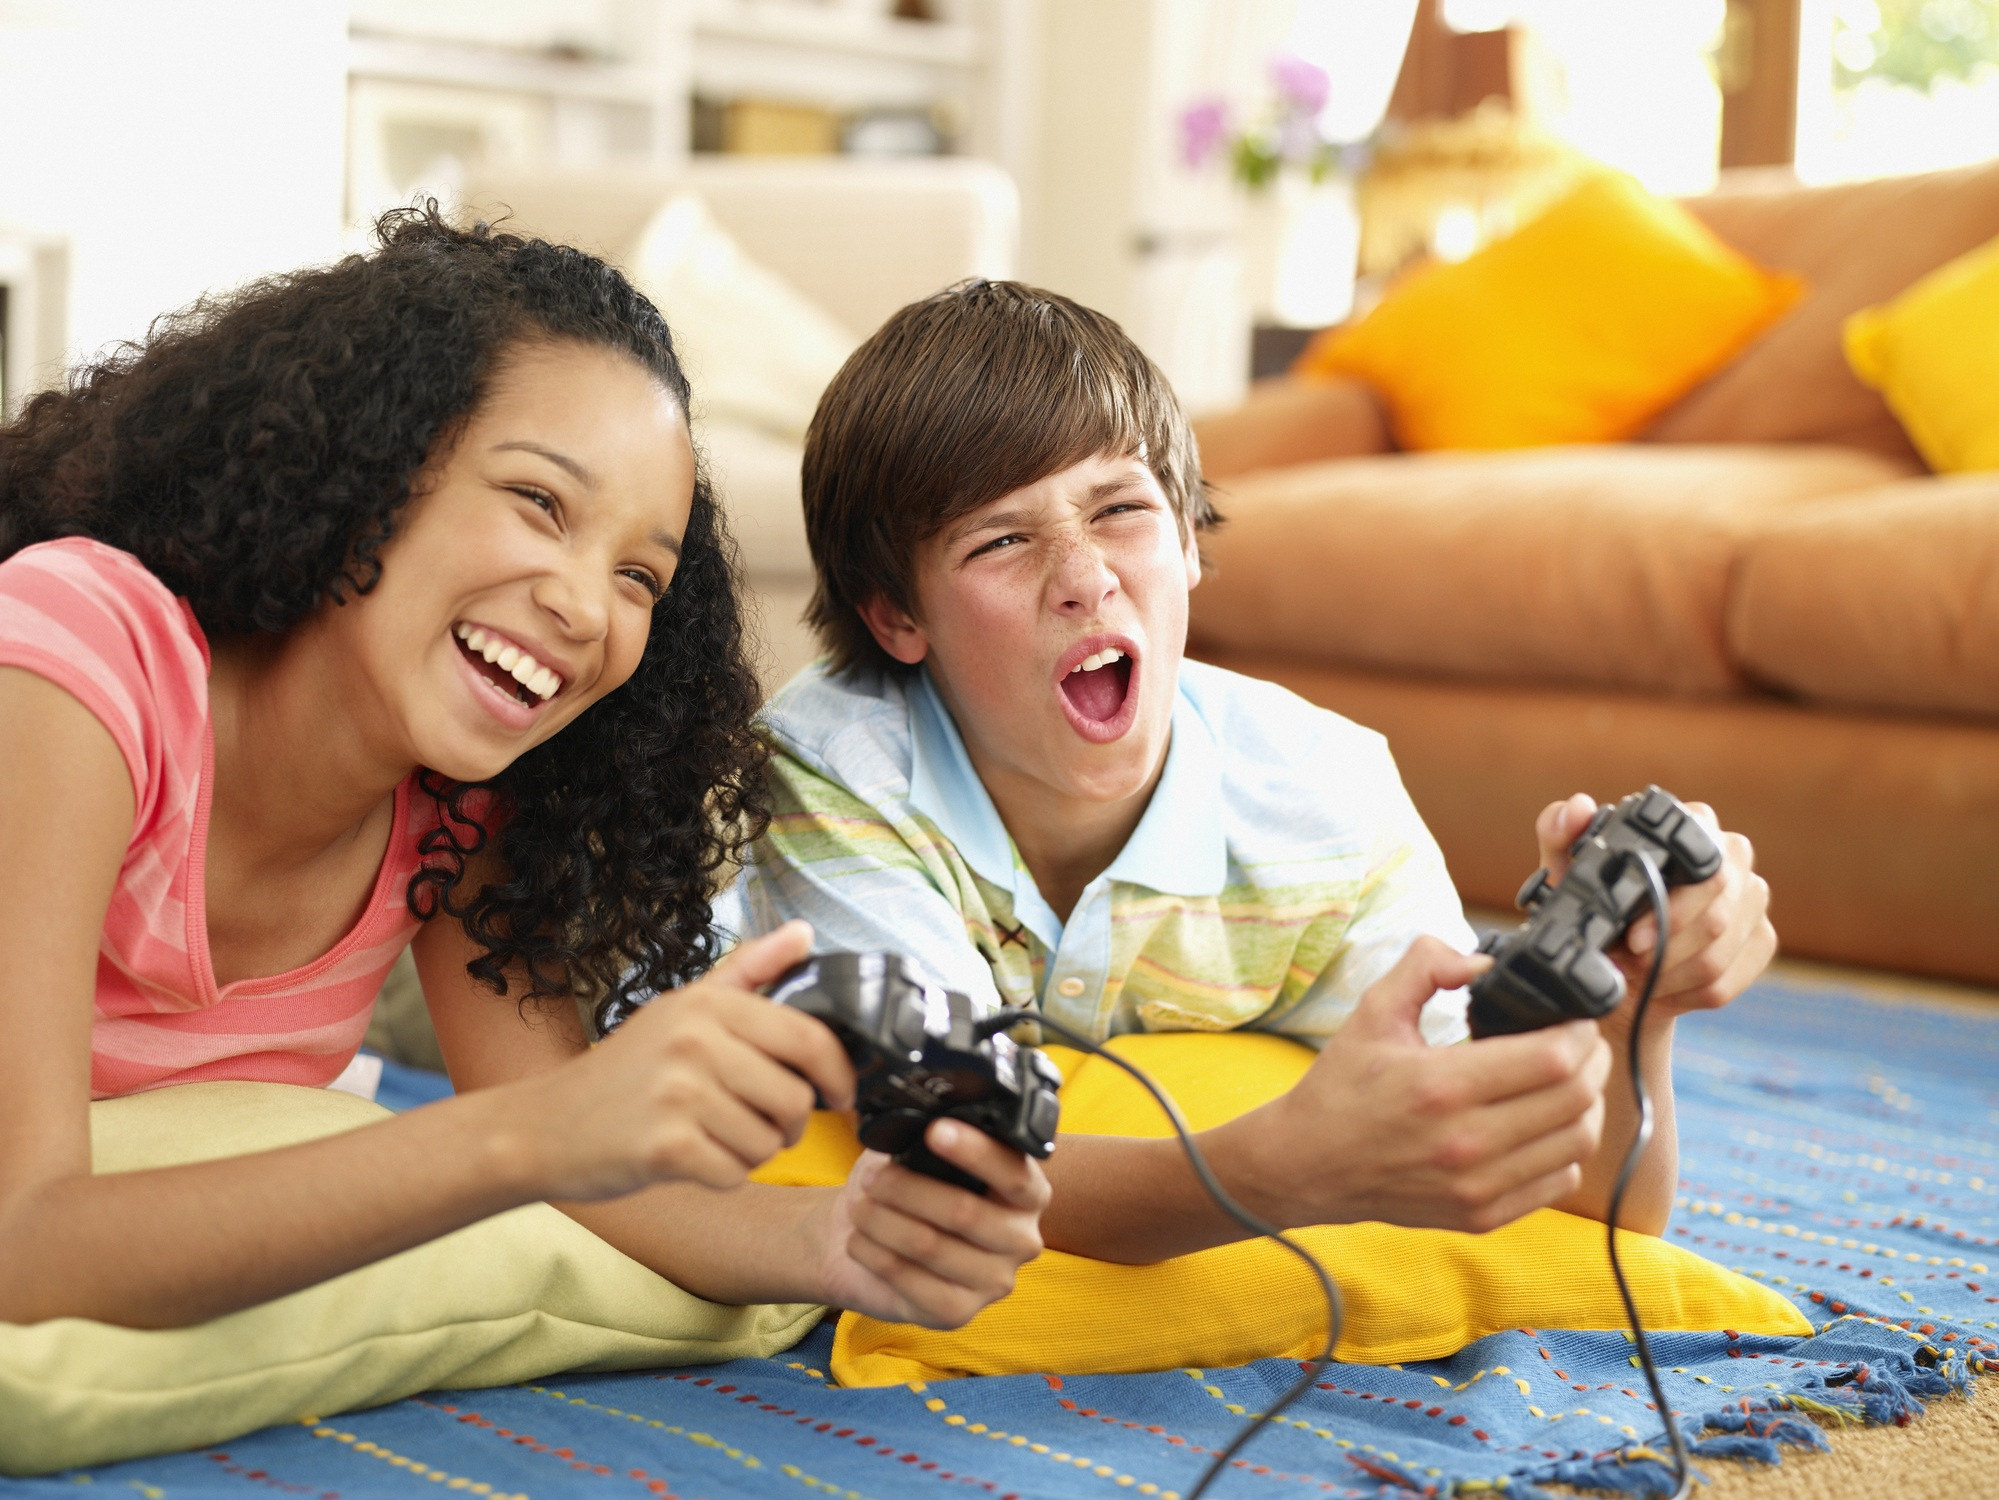 Teenage girl and boy playing video games